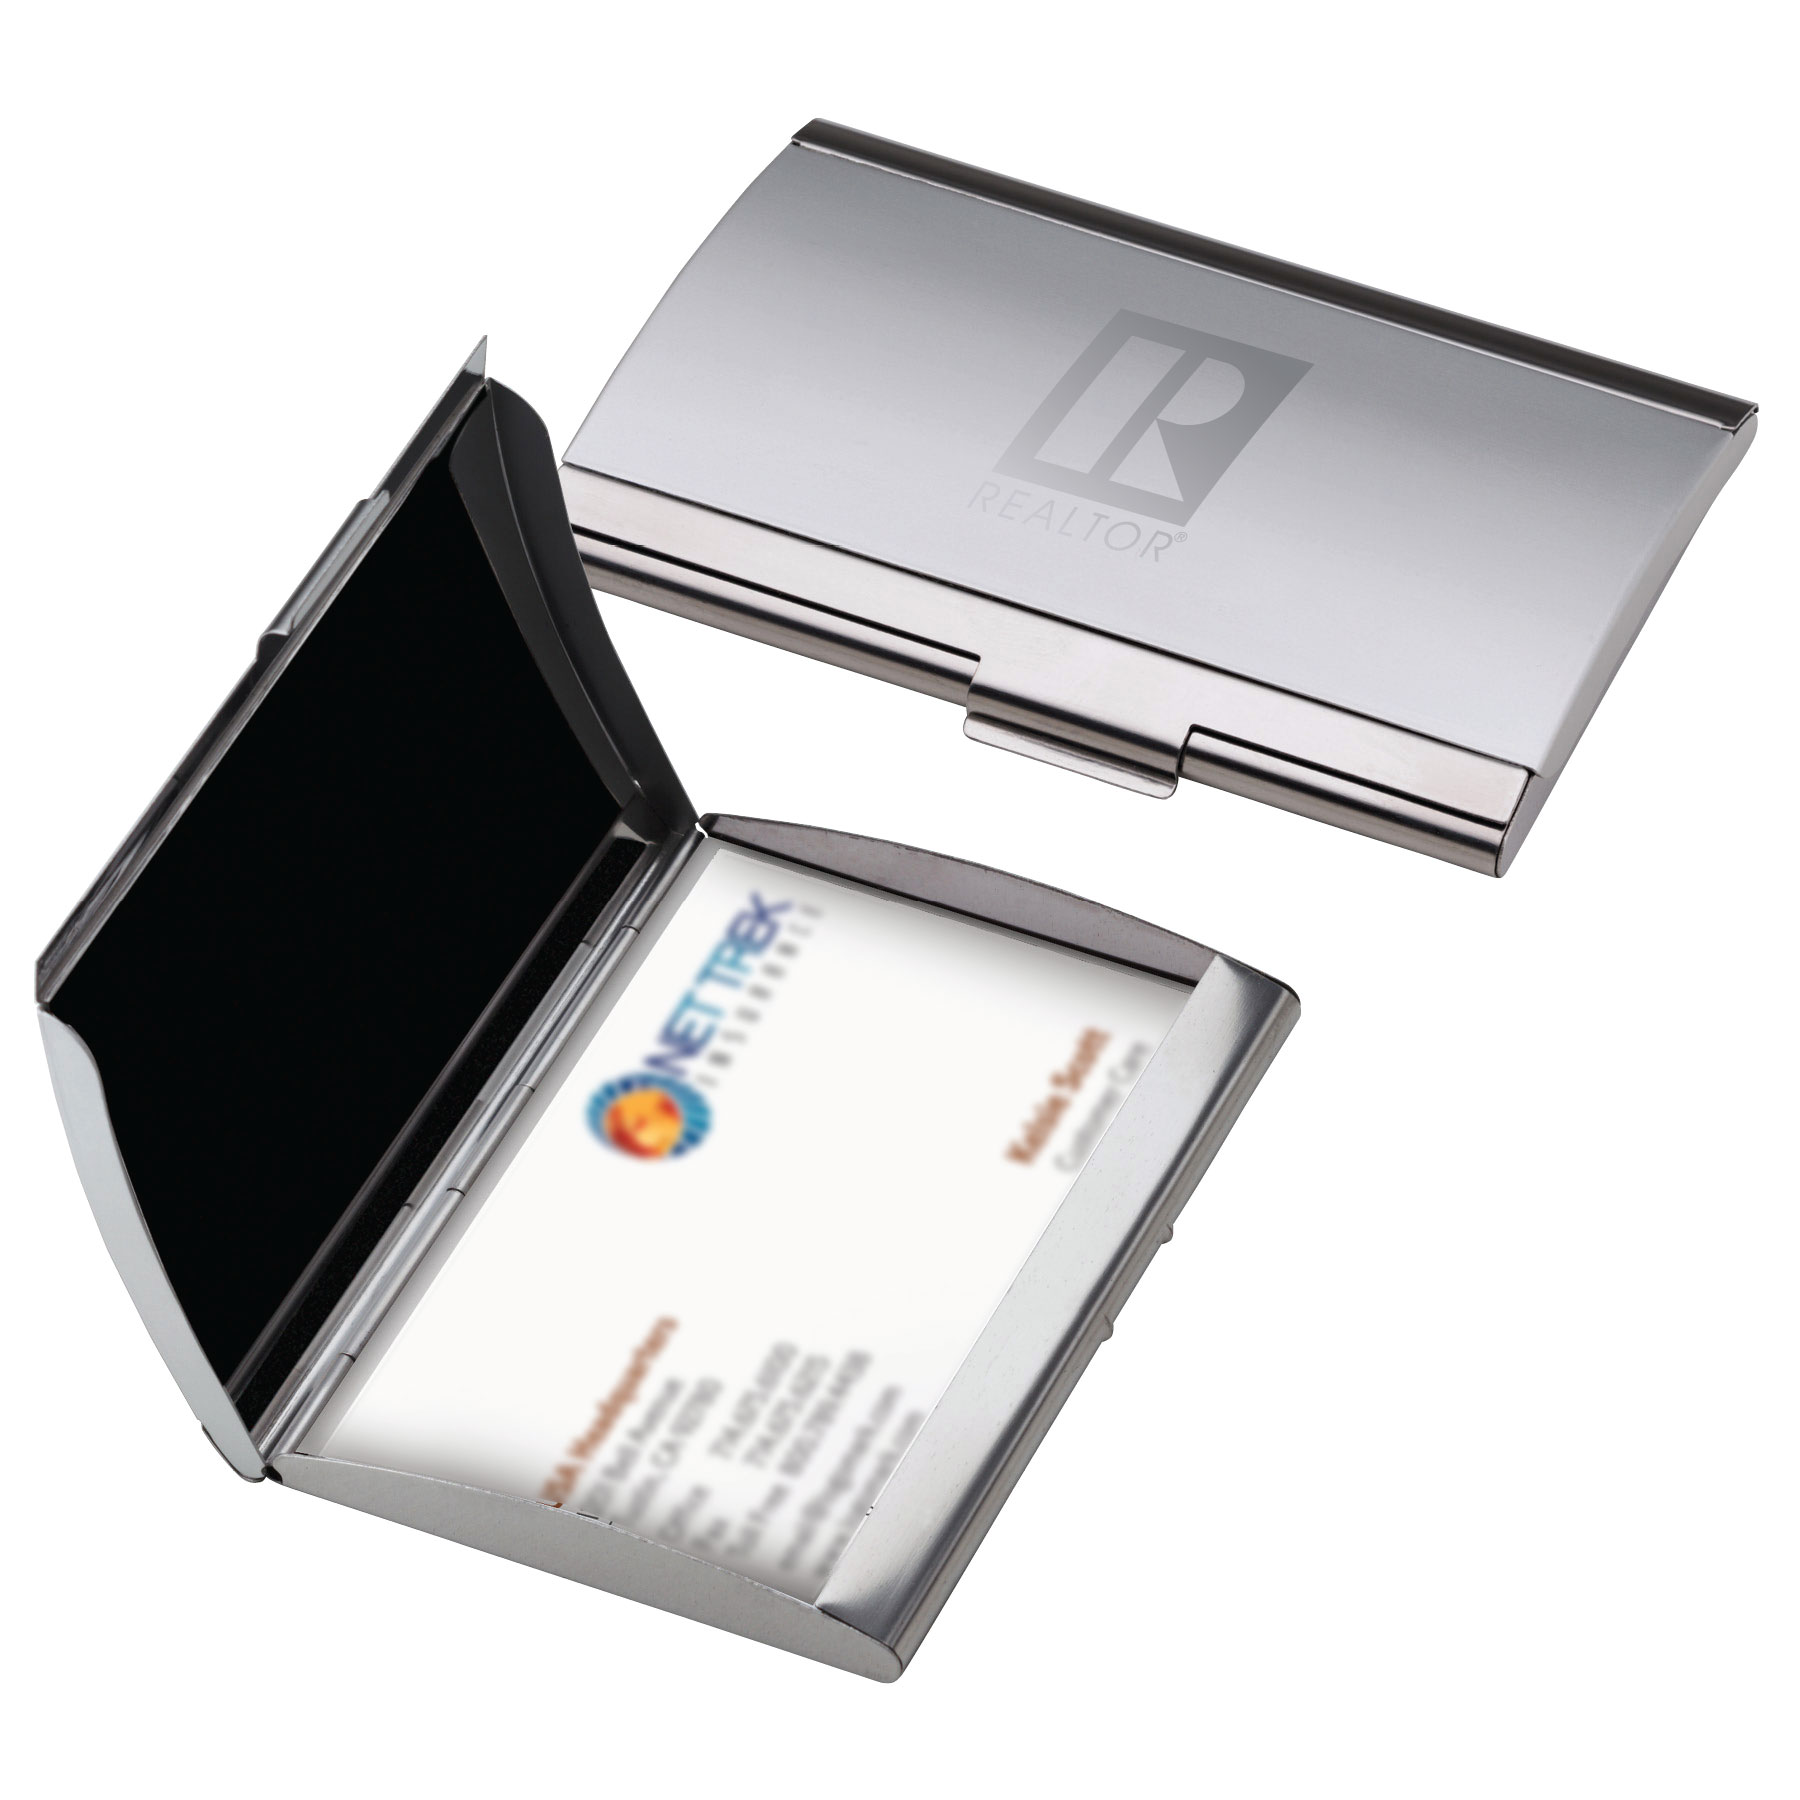 REALTOR® Denver Business Card Case (RTS4677)